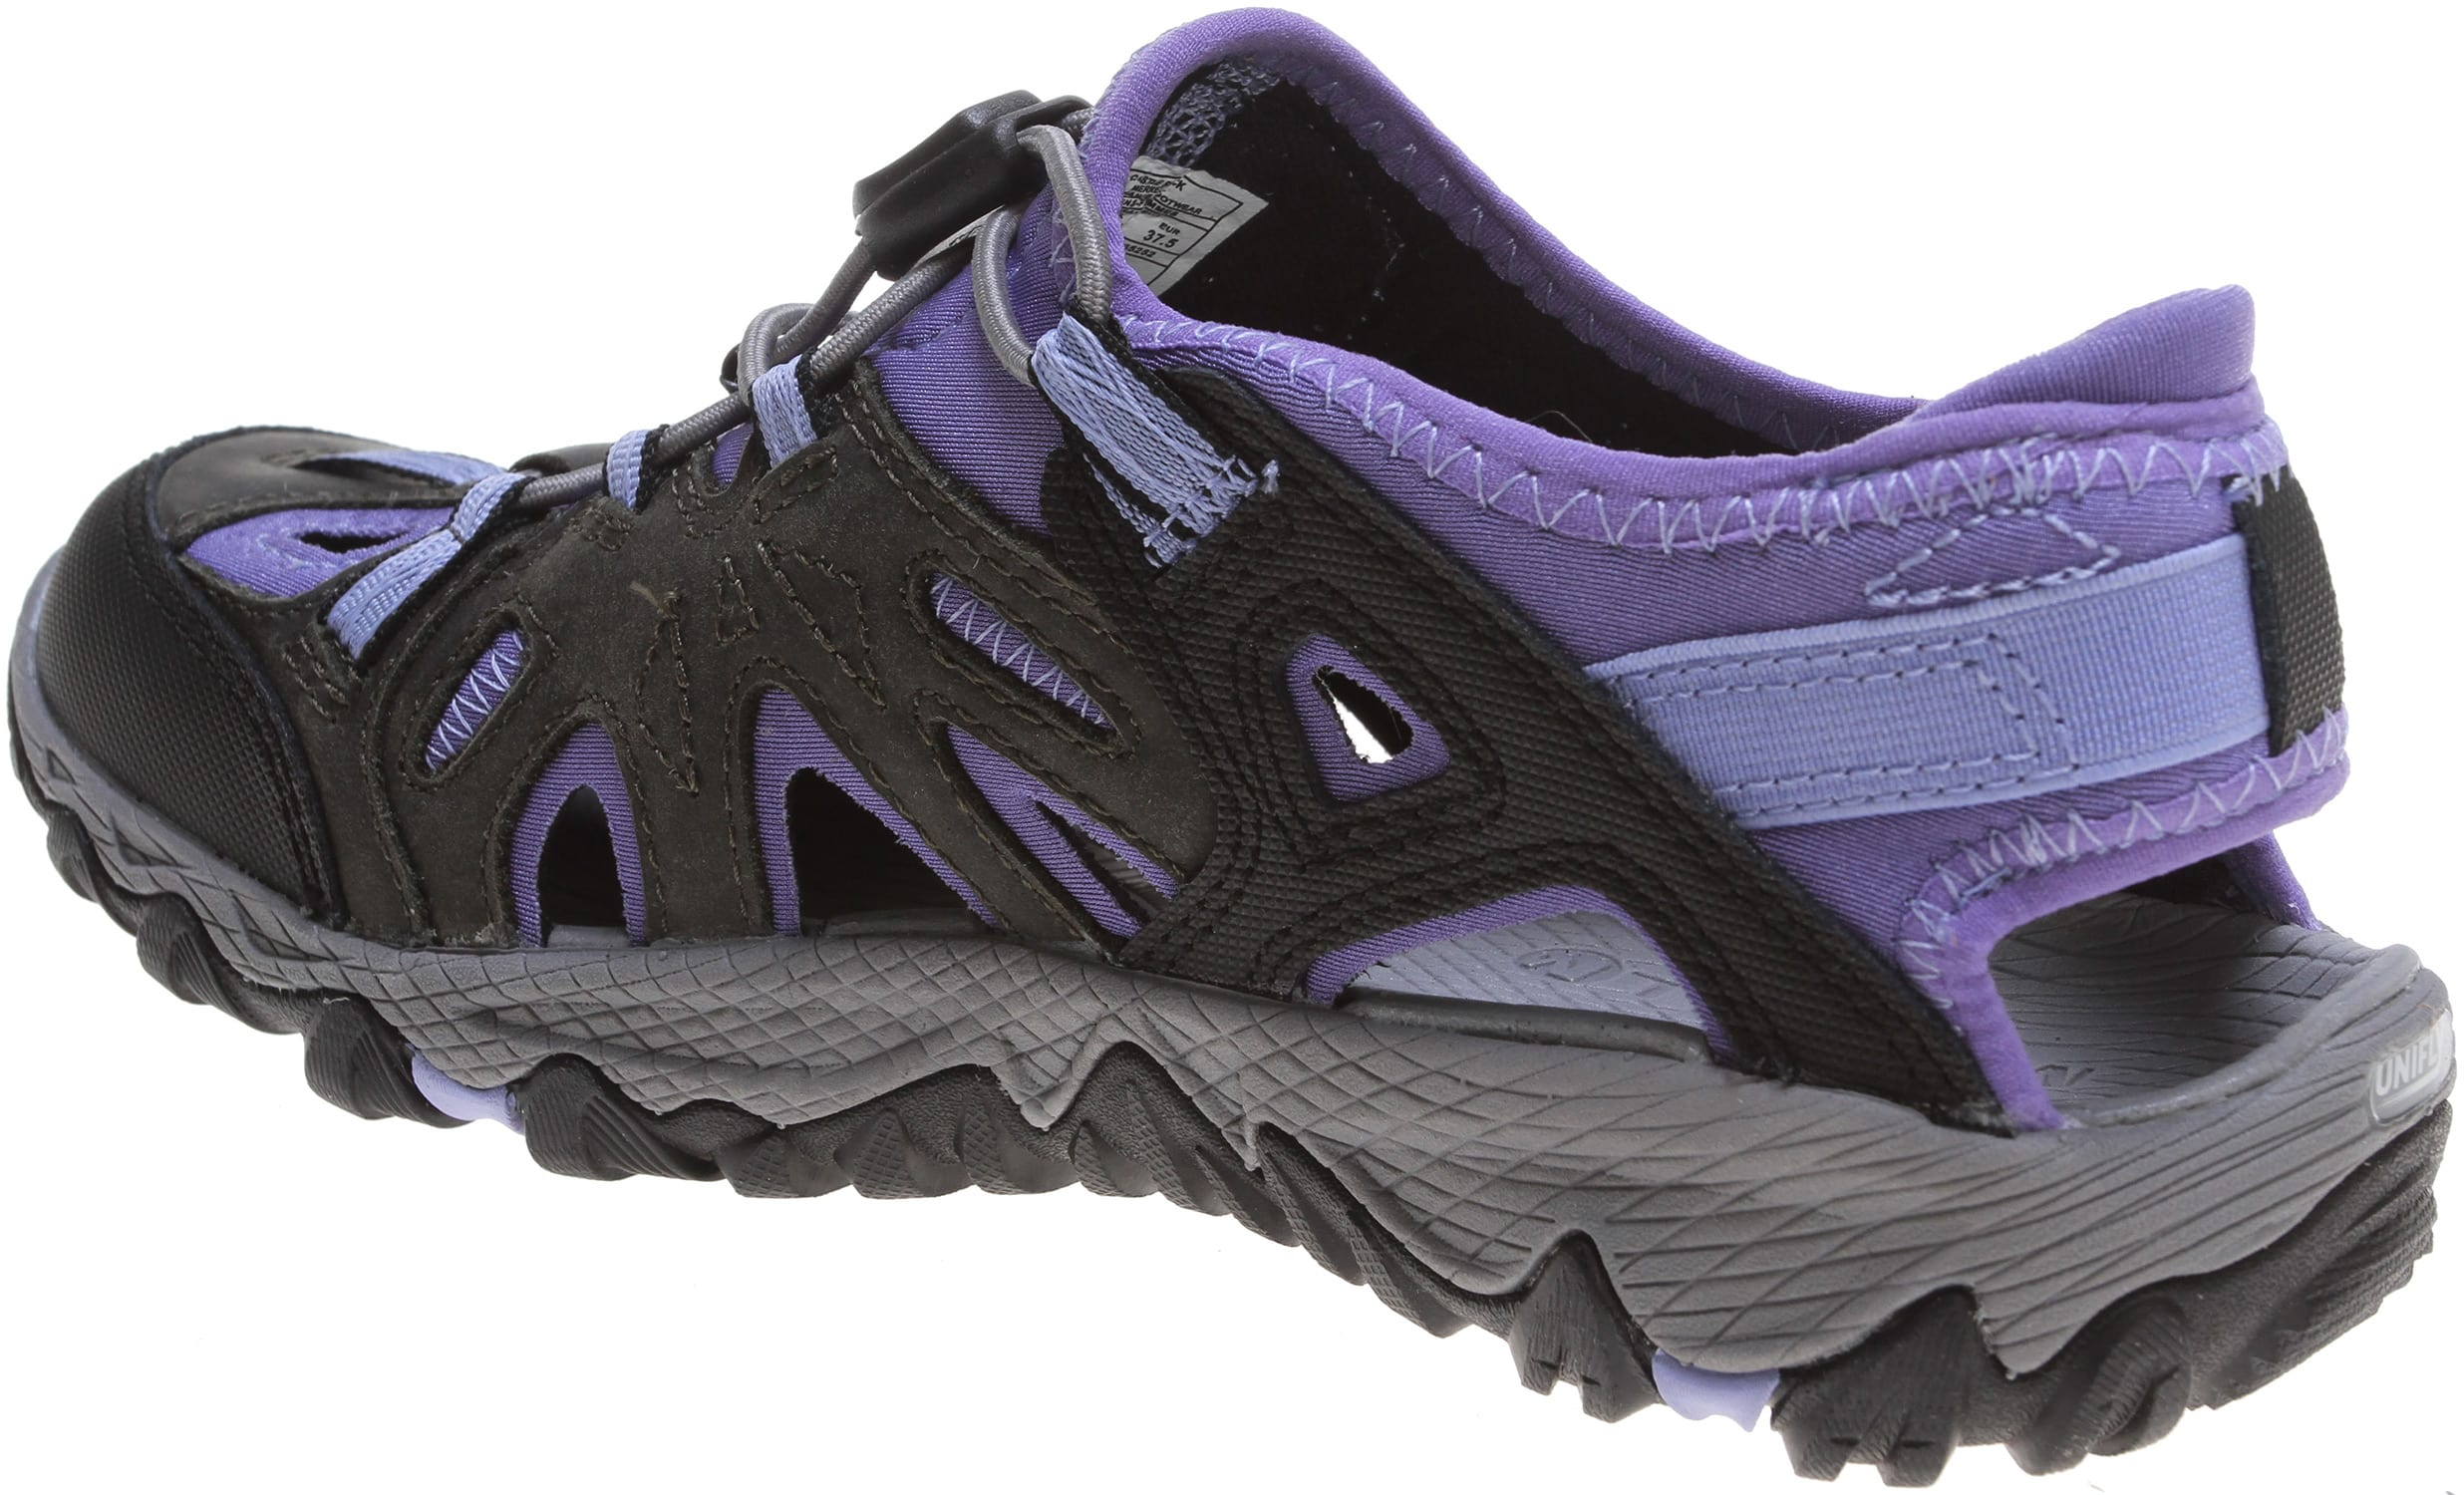 Merrell Womens Hiking Shoes Reviews